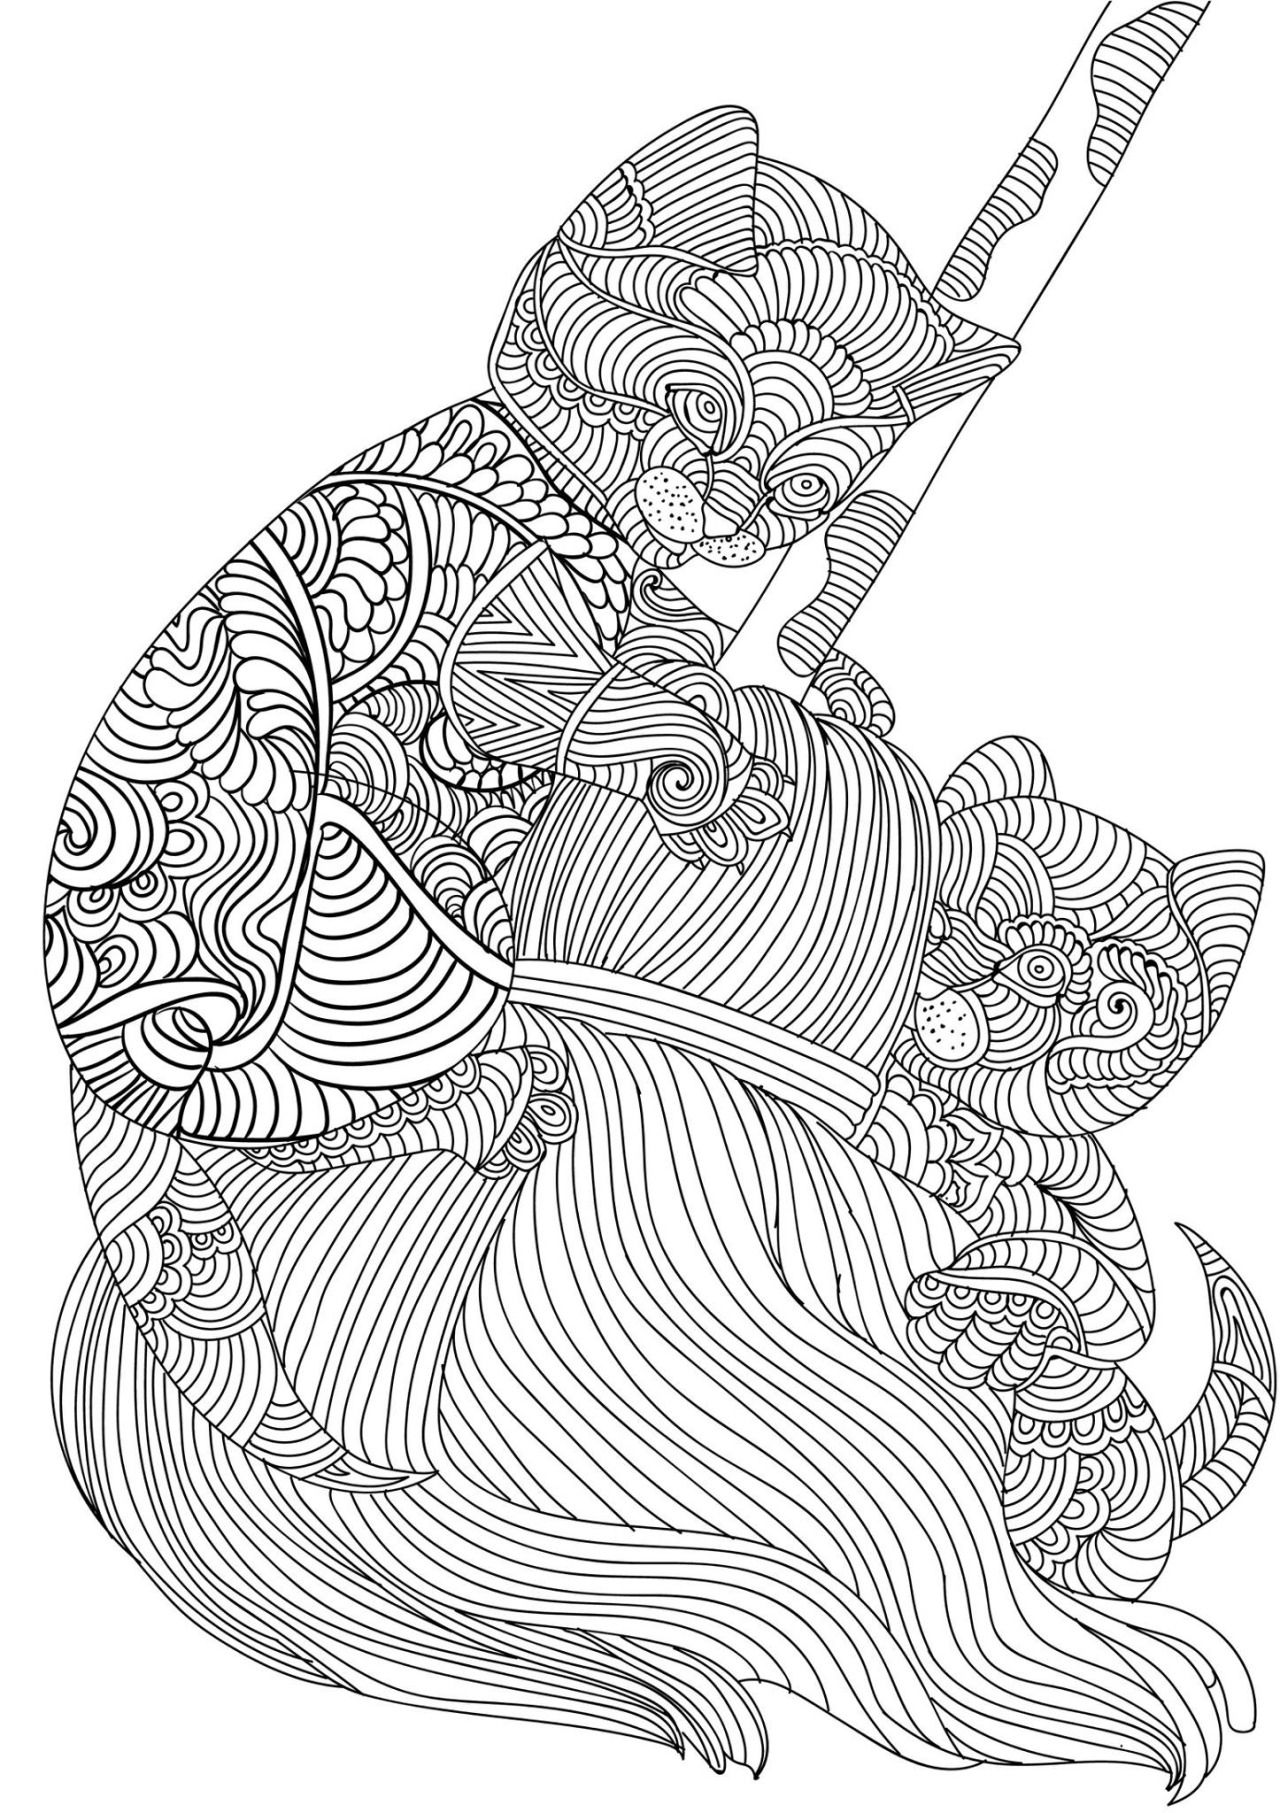 Look at these cute cats an image straight out of our upcoming adult coloring book